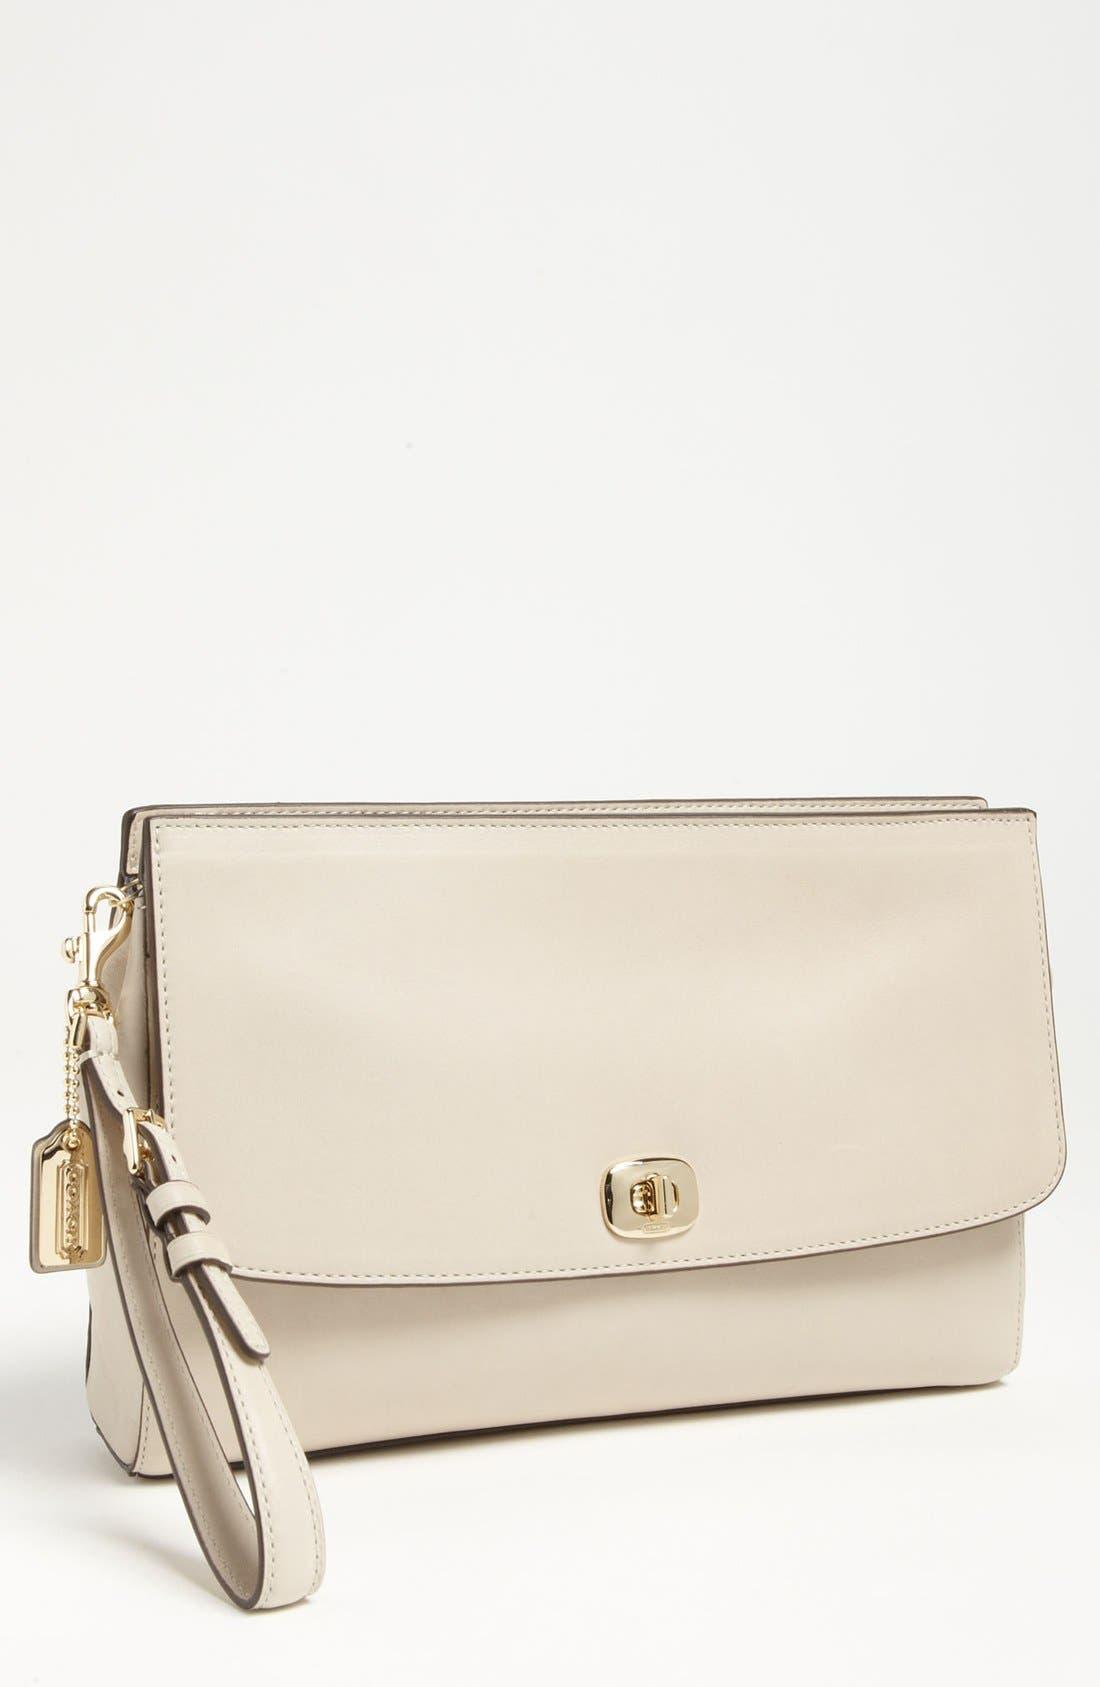 Main Image - COACH 'Legacy - Pinnacle' Leather Clutch